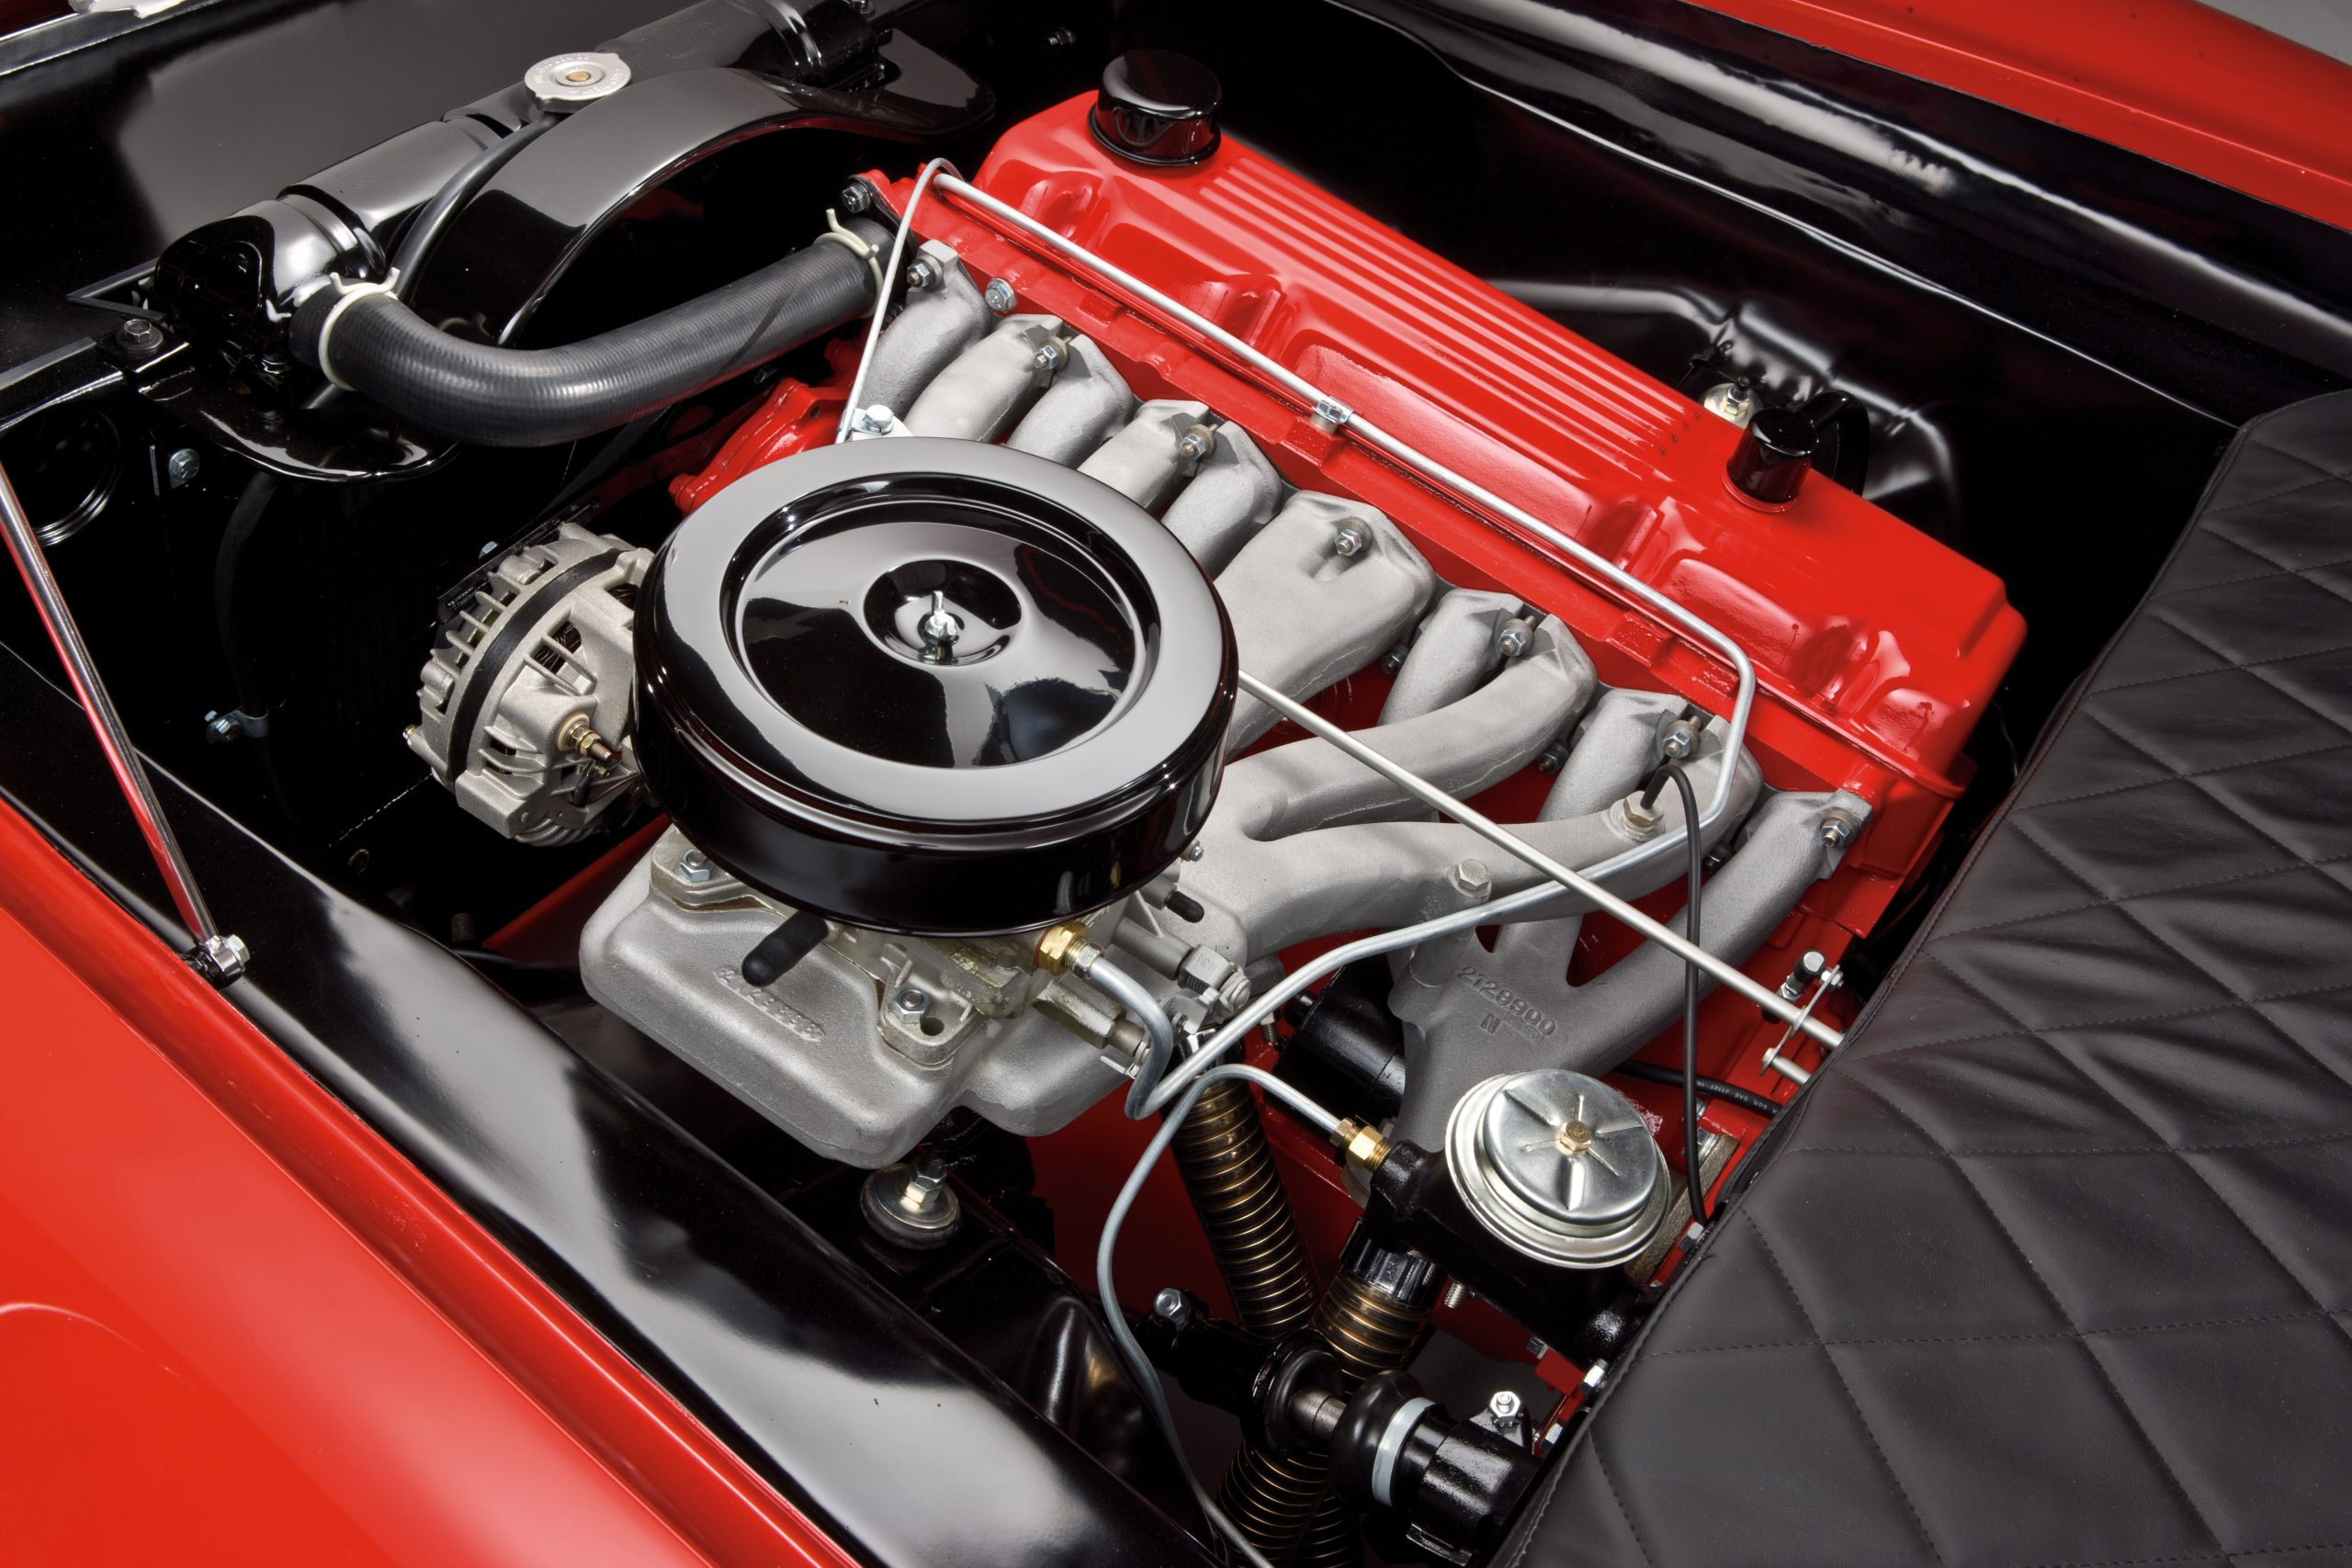 1960 Plymouth XNR engine